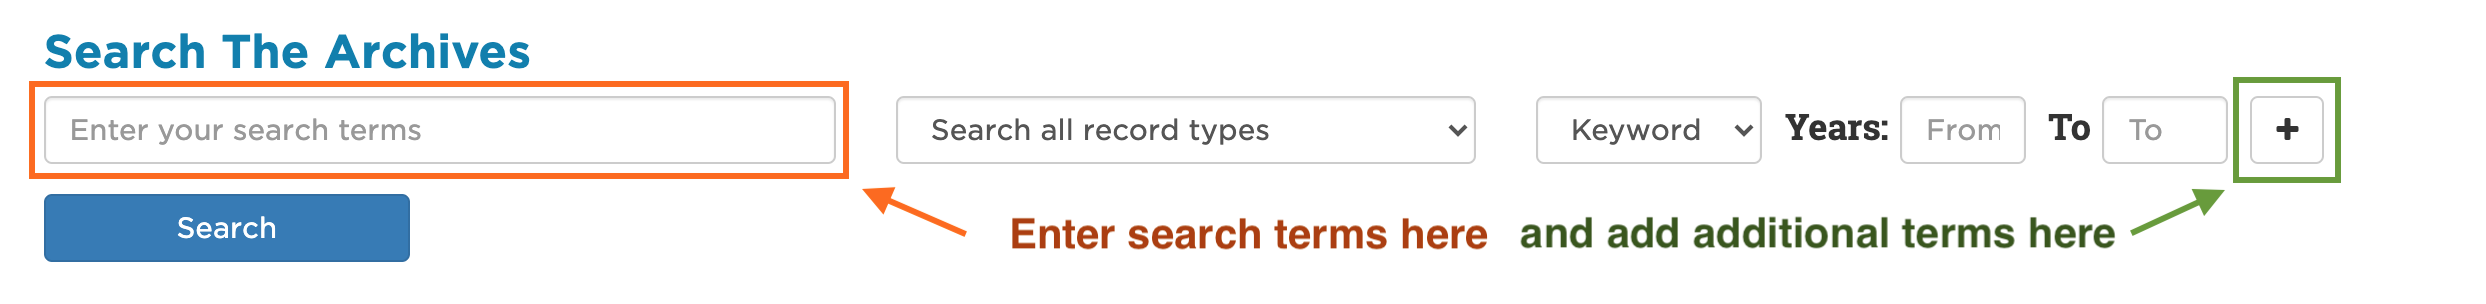 Screenshot marked up to show where to enter search terms and how to add additional search terms in SCOUT.